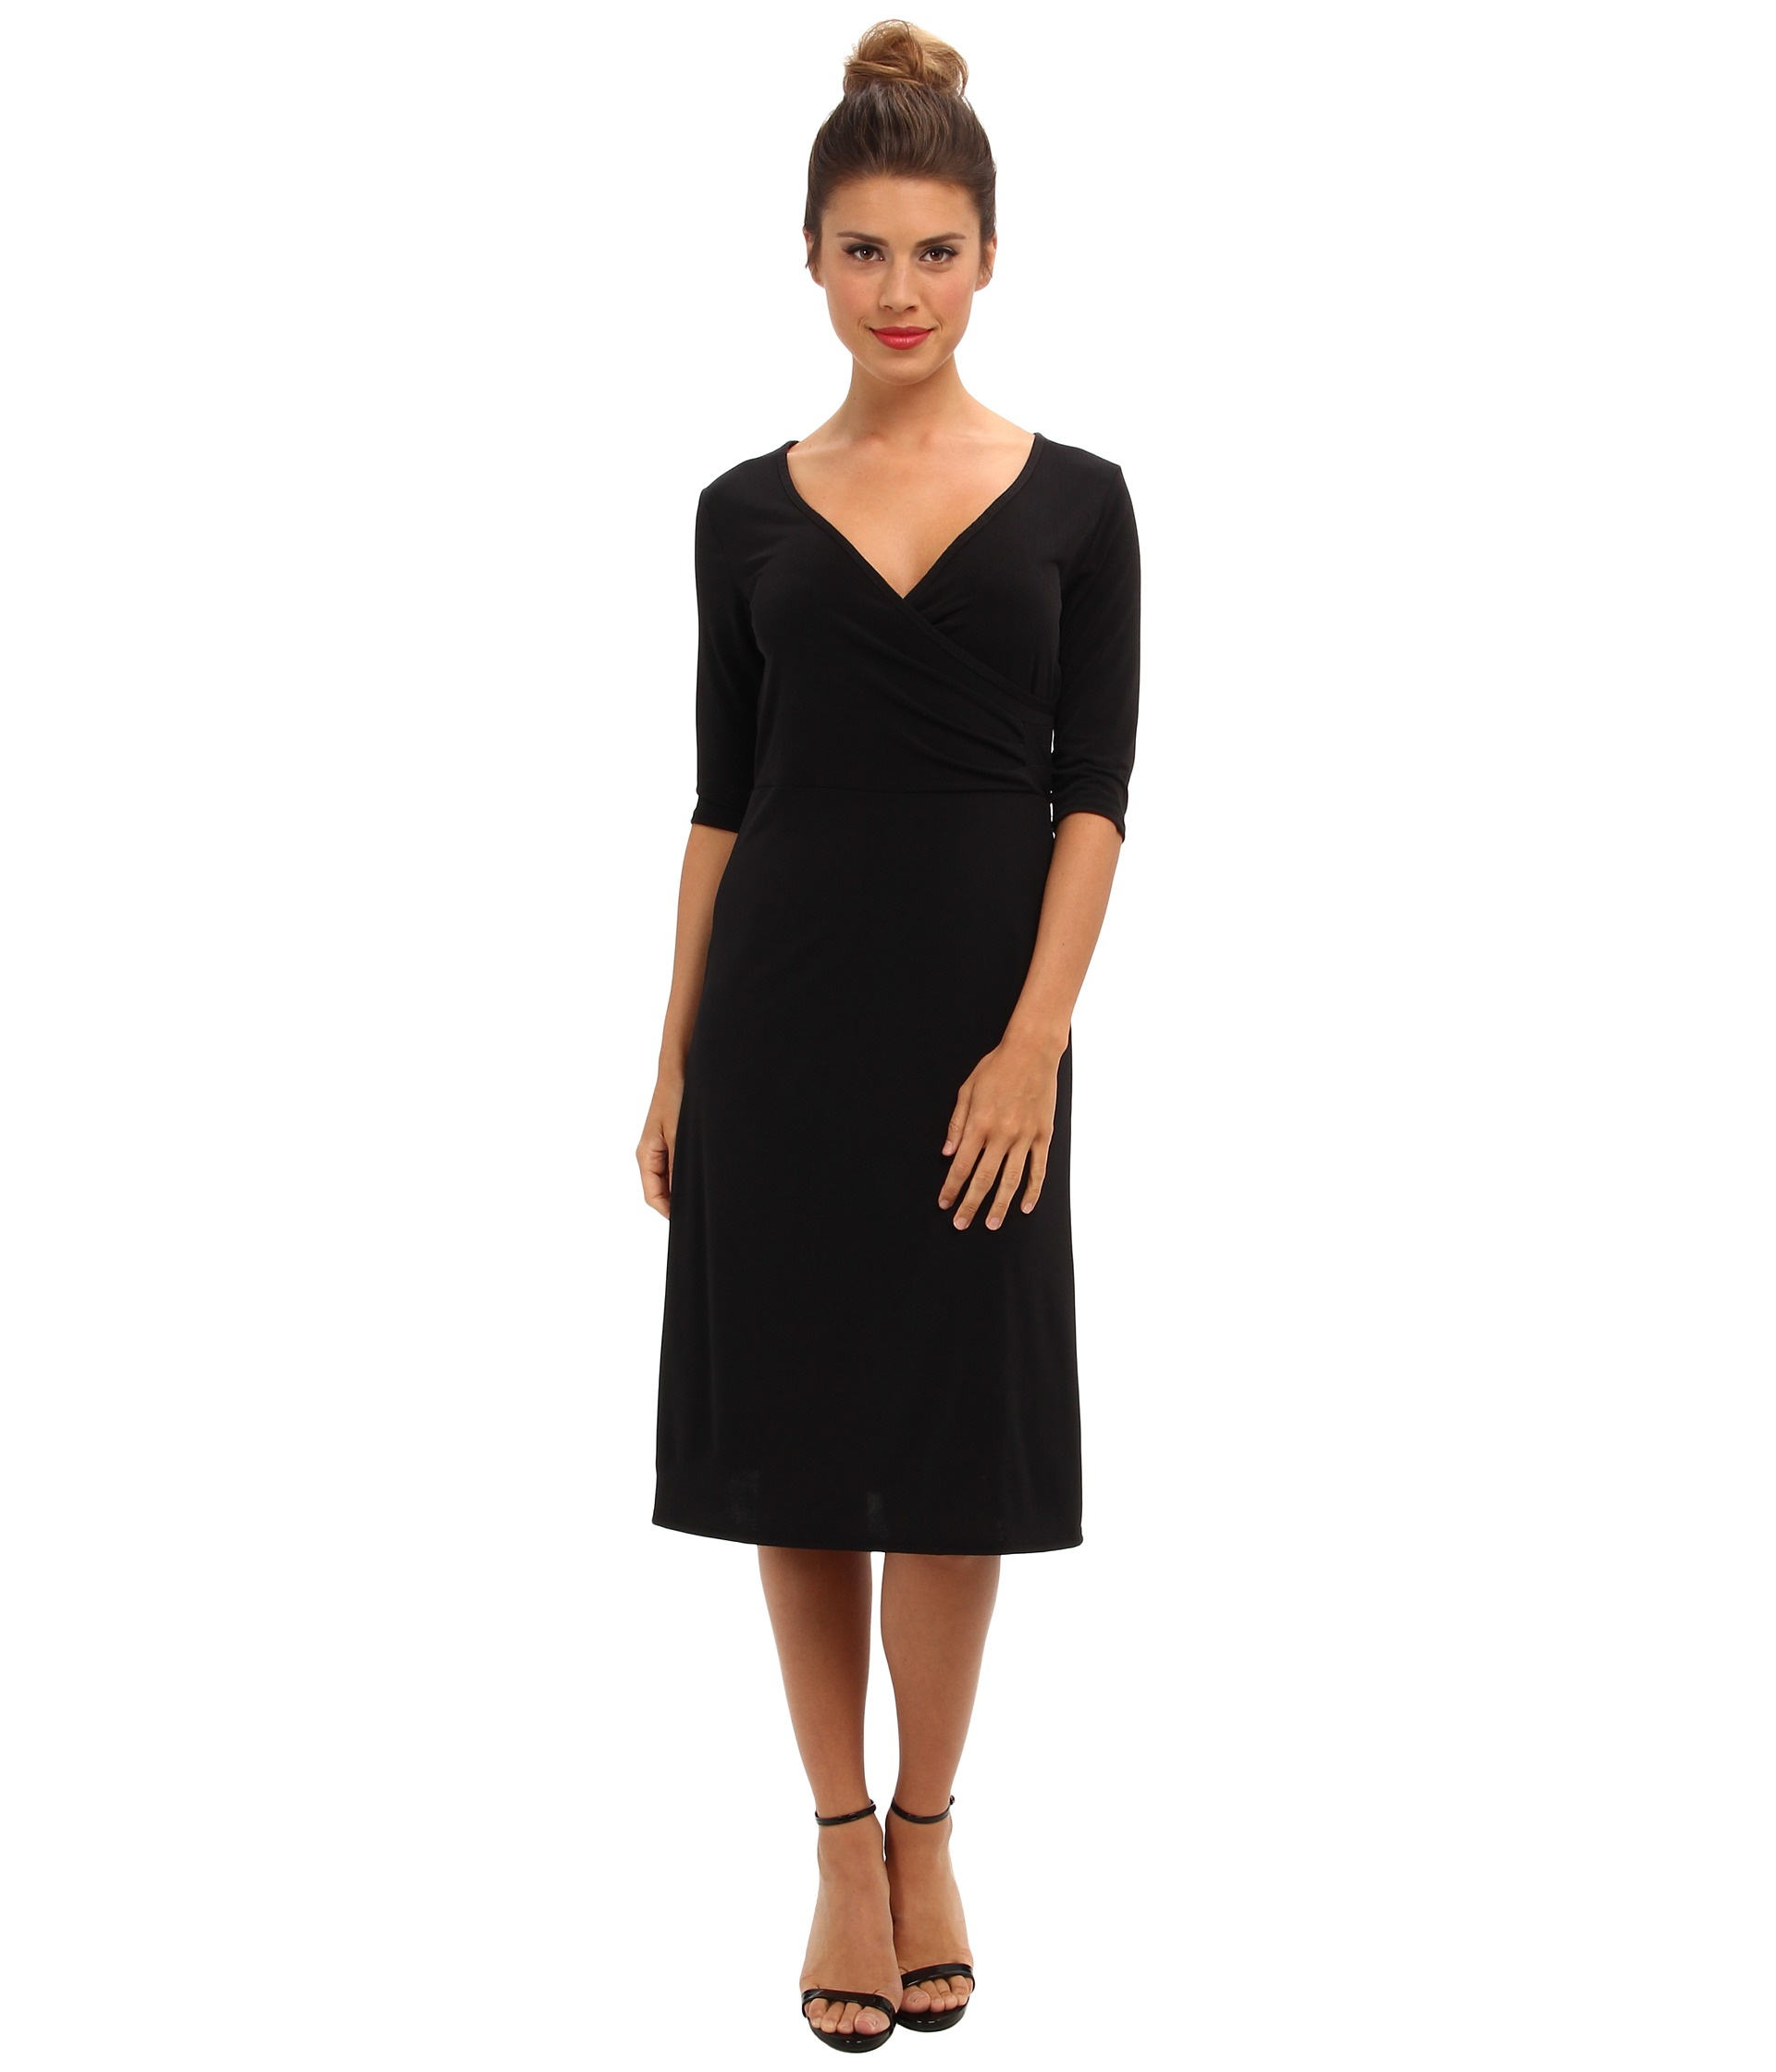 3/4 SLEEVE DRESSES FOR WOMEN. Take your standout style to the next level with ultra-fashionable 3/4-length sleeve dresses. Whether you want a little black dress ideal for date night, a flowing feminine gown that makes a luxe statement at formal affairs or a cute ruffled floral-print selection for a lunch date with friends, this collection provides numerous colors, styles and lengths to suit.